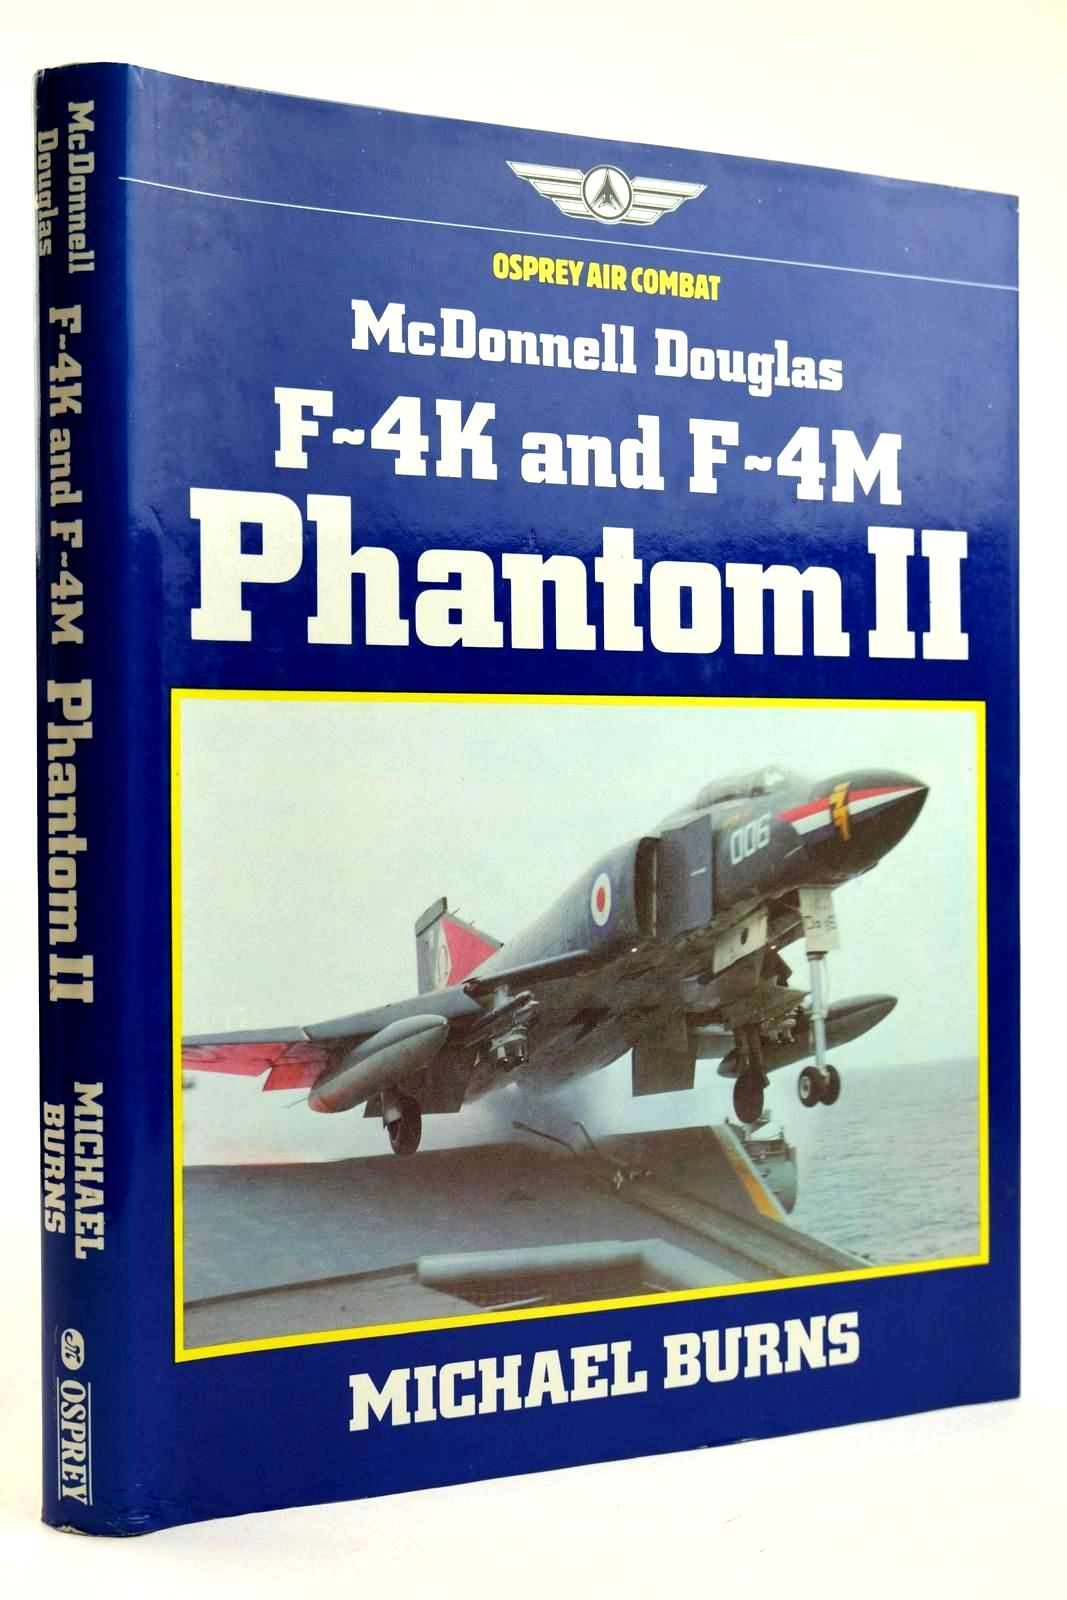 Photo of MCDONNELL DOUGLAS F-4K AND F-4M PHANTOM II written by Burns, Michael published by Osprey Air Combat (STOCK CODE: 2132036)  for sale by Stella & Rose's Books